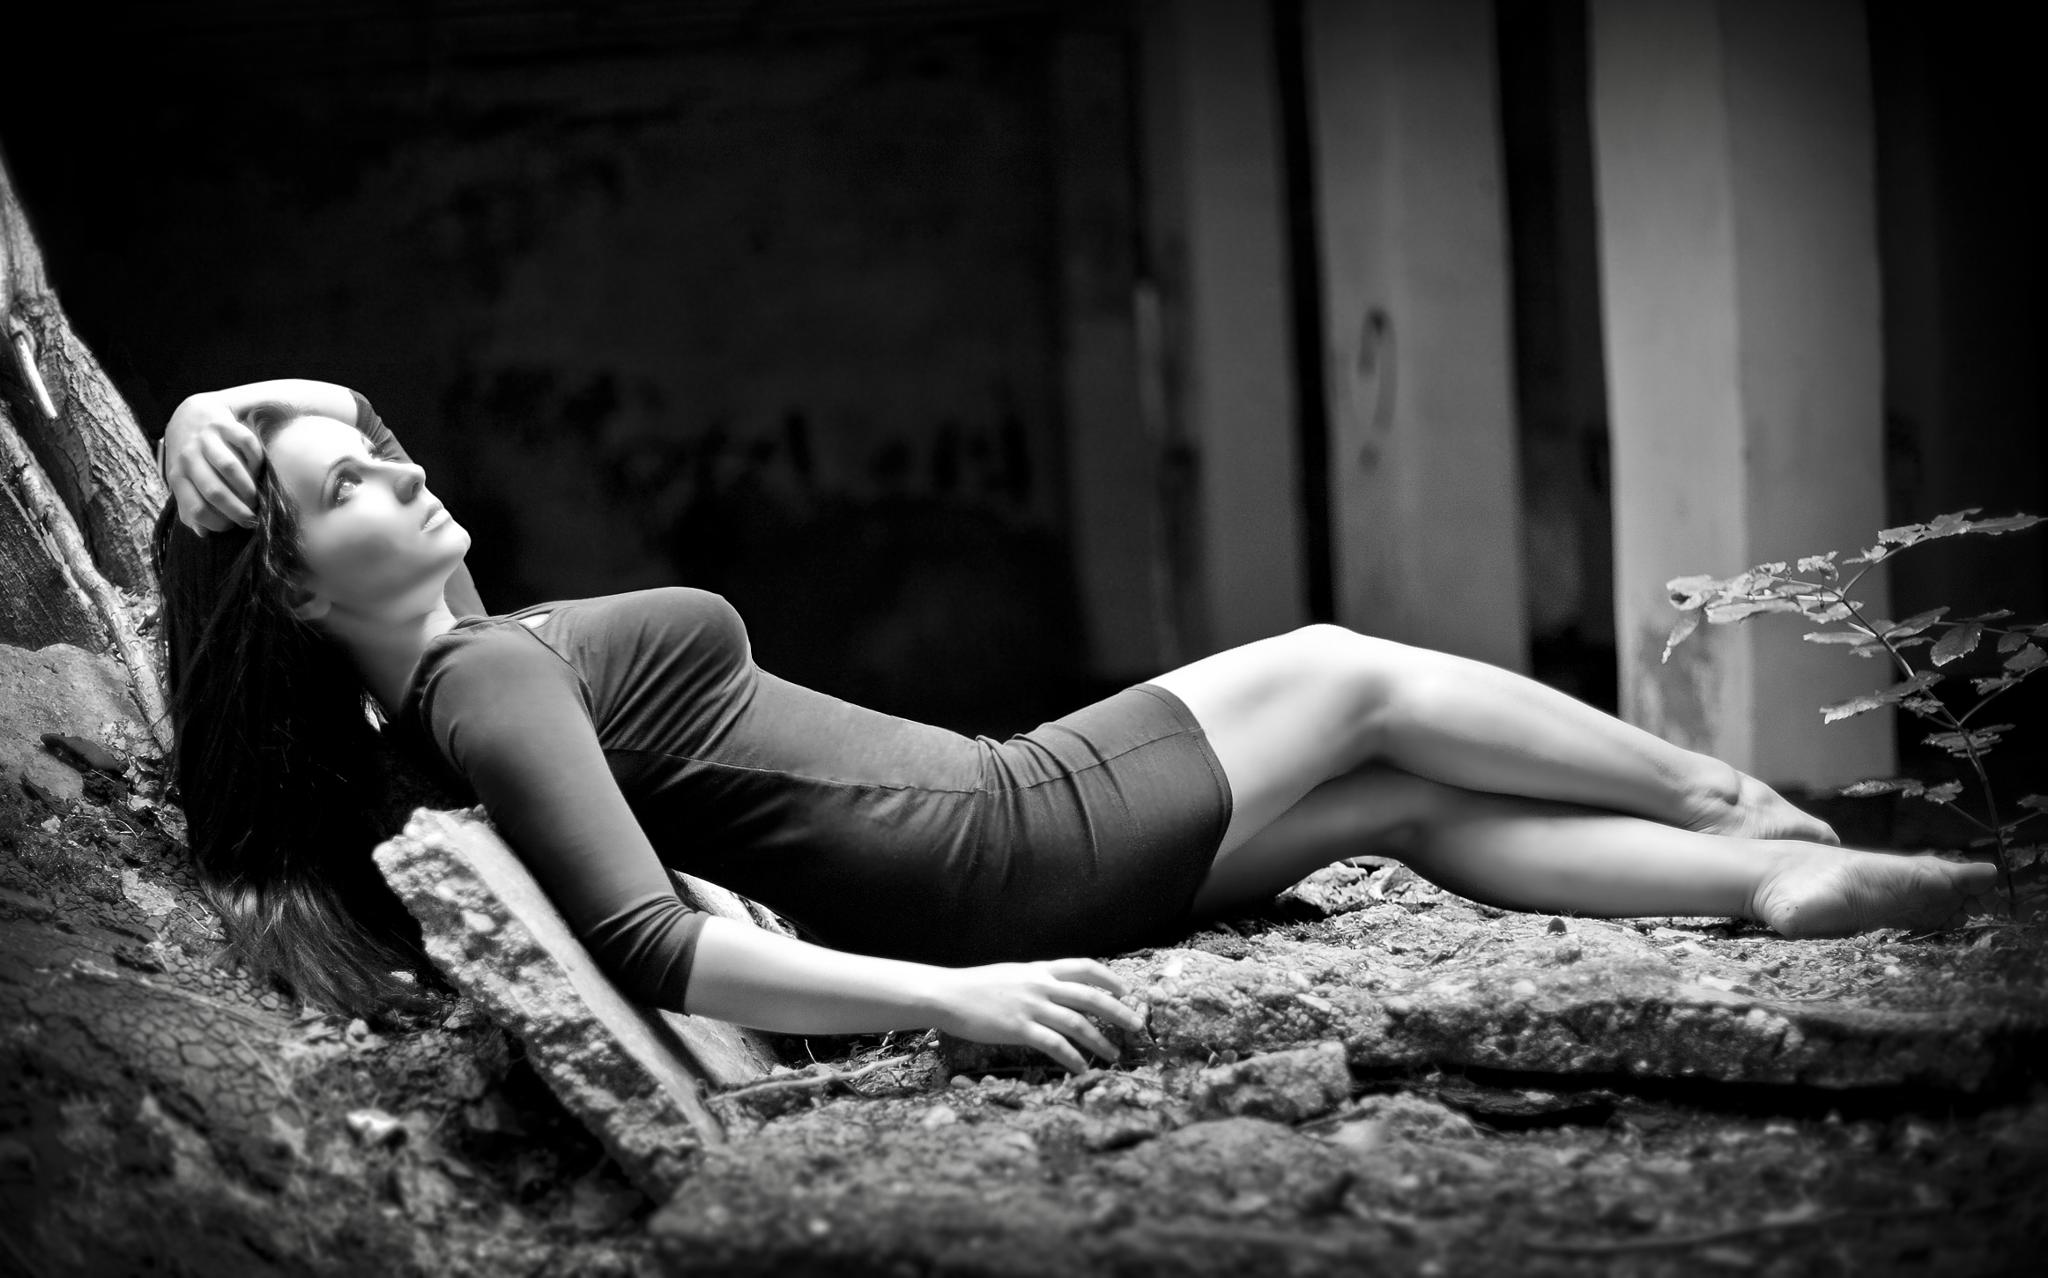 Anne by Pierre Photolive